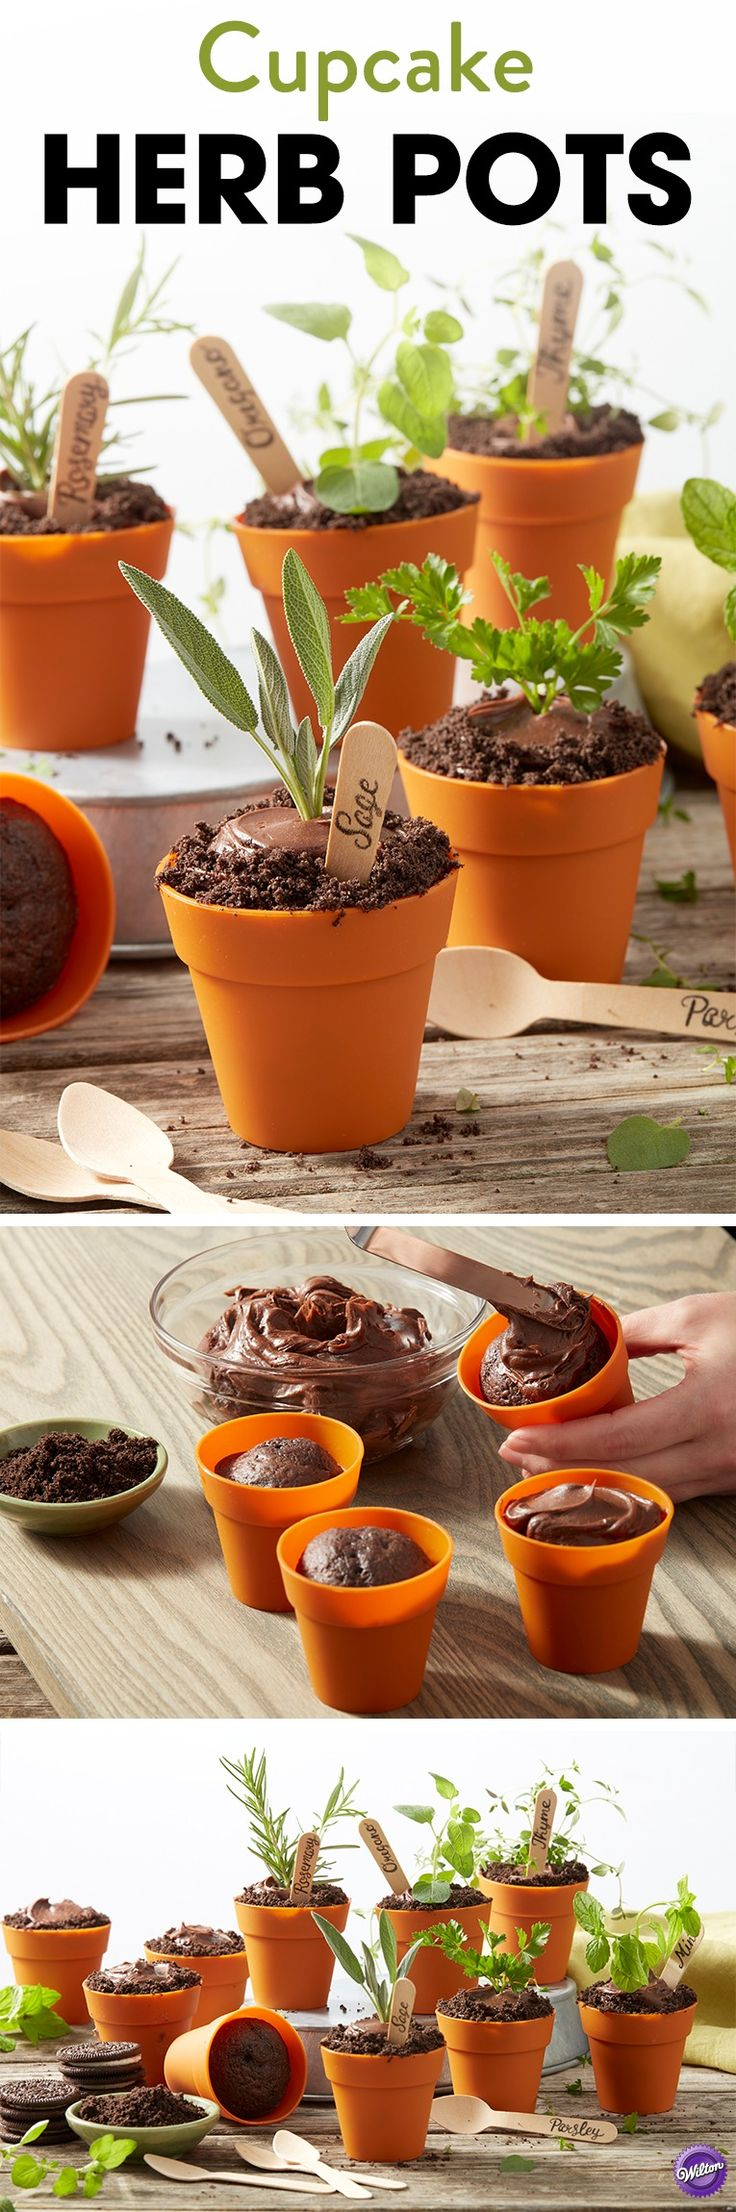 Welcome spring into your home with these adorable Cupcake Herb Pots. Made using your favorite devil's food cake mix or recipe, these little pots are decorated with chocolate icing and crushed cookies, then topped with your favorite fresh herbs. Use the Silicone Flower Pot Cups to bake these little treats, great for celebrating Mother's Day, a birthday, or the start of warm weather!